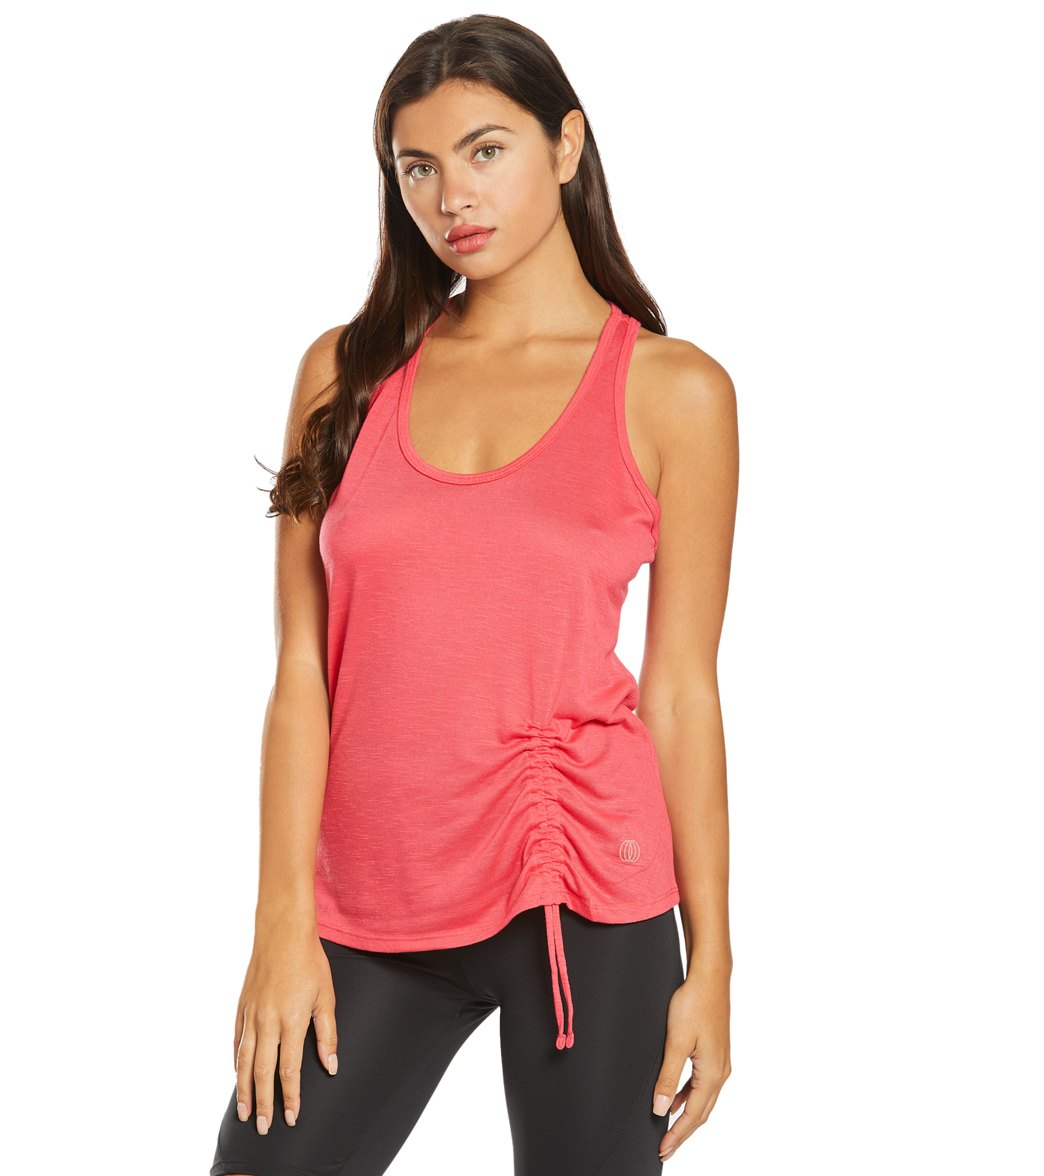 f95a89469fea5 Balance Collection Cleo Cinch Yoga Tank at YogaOutlet.com